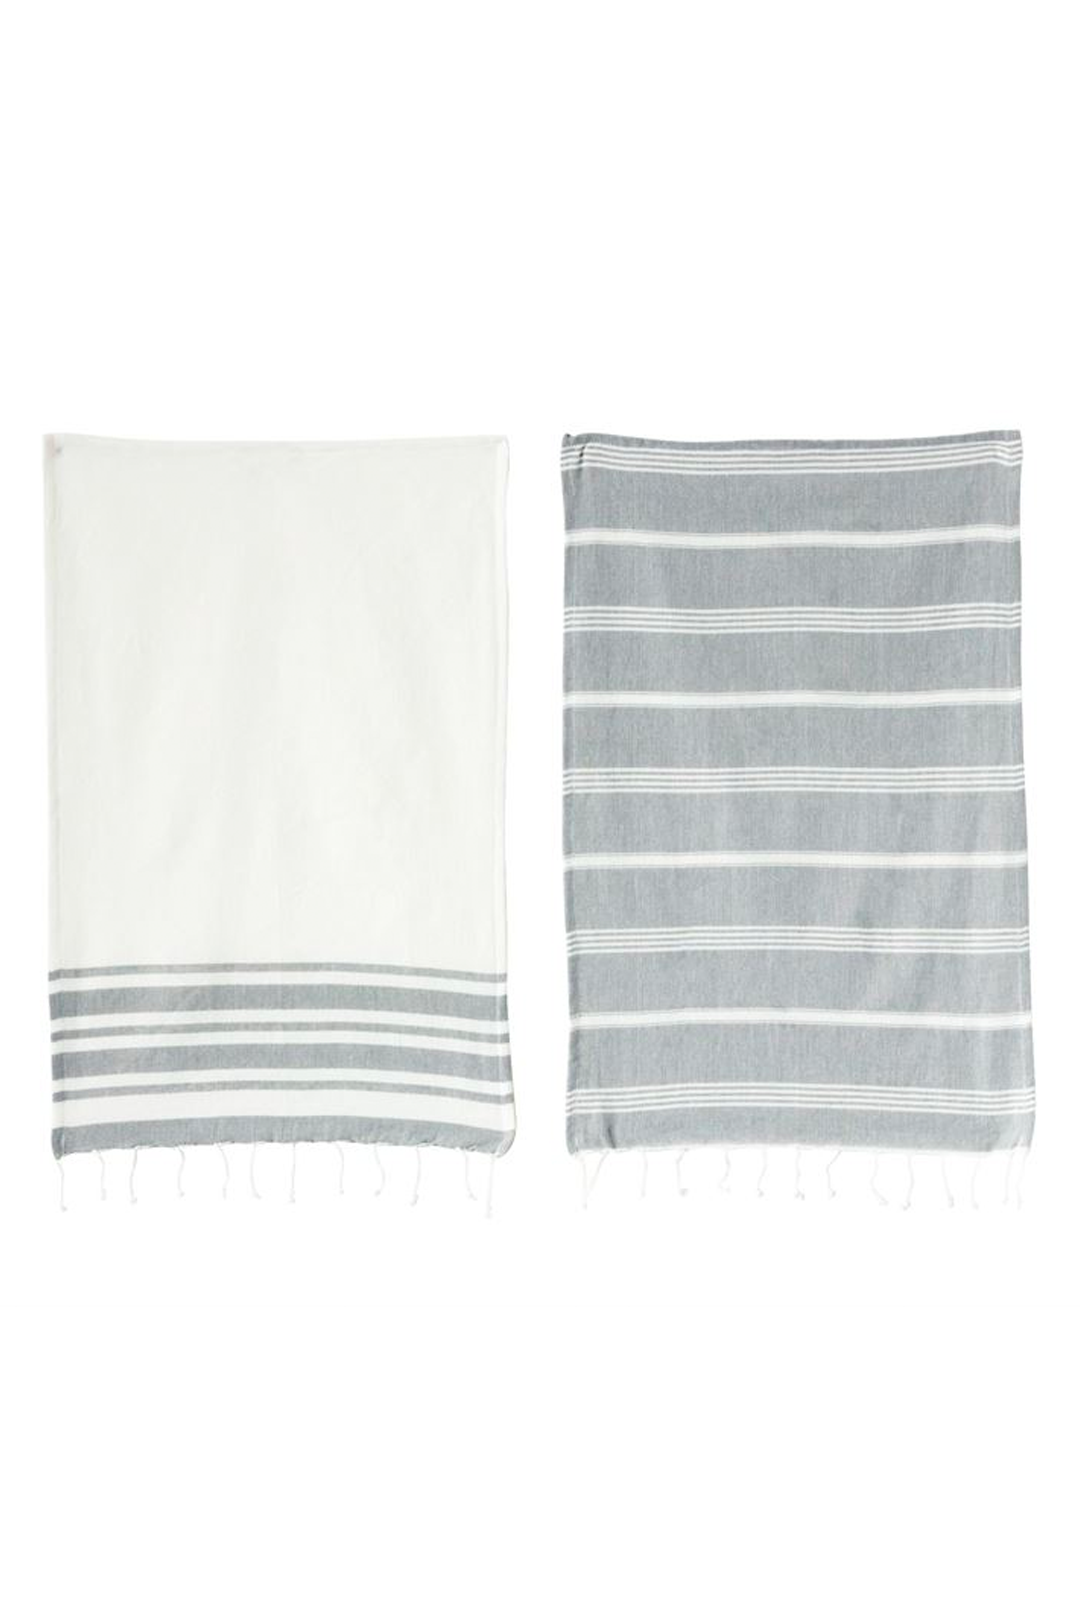 Cotton Woven Tea Towel, 2 Styles